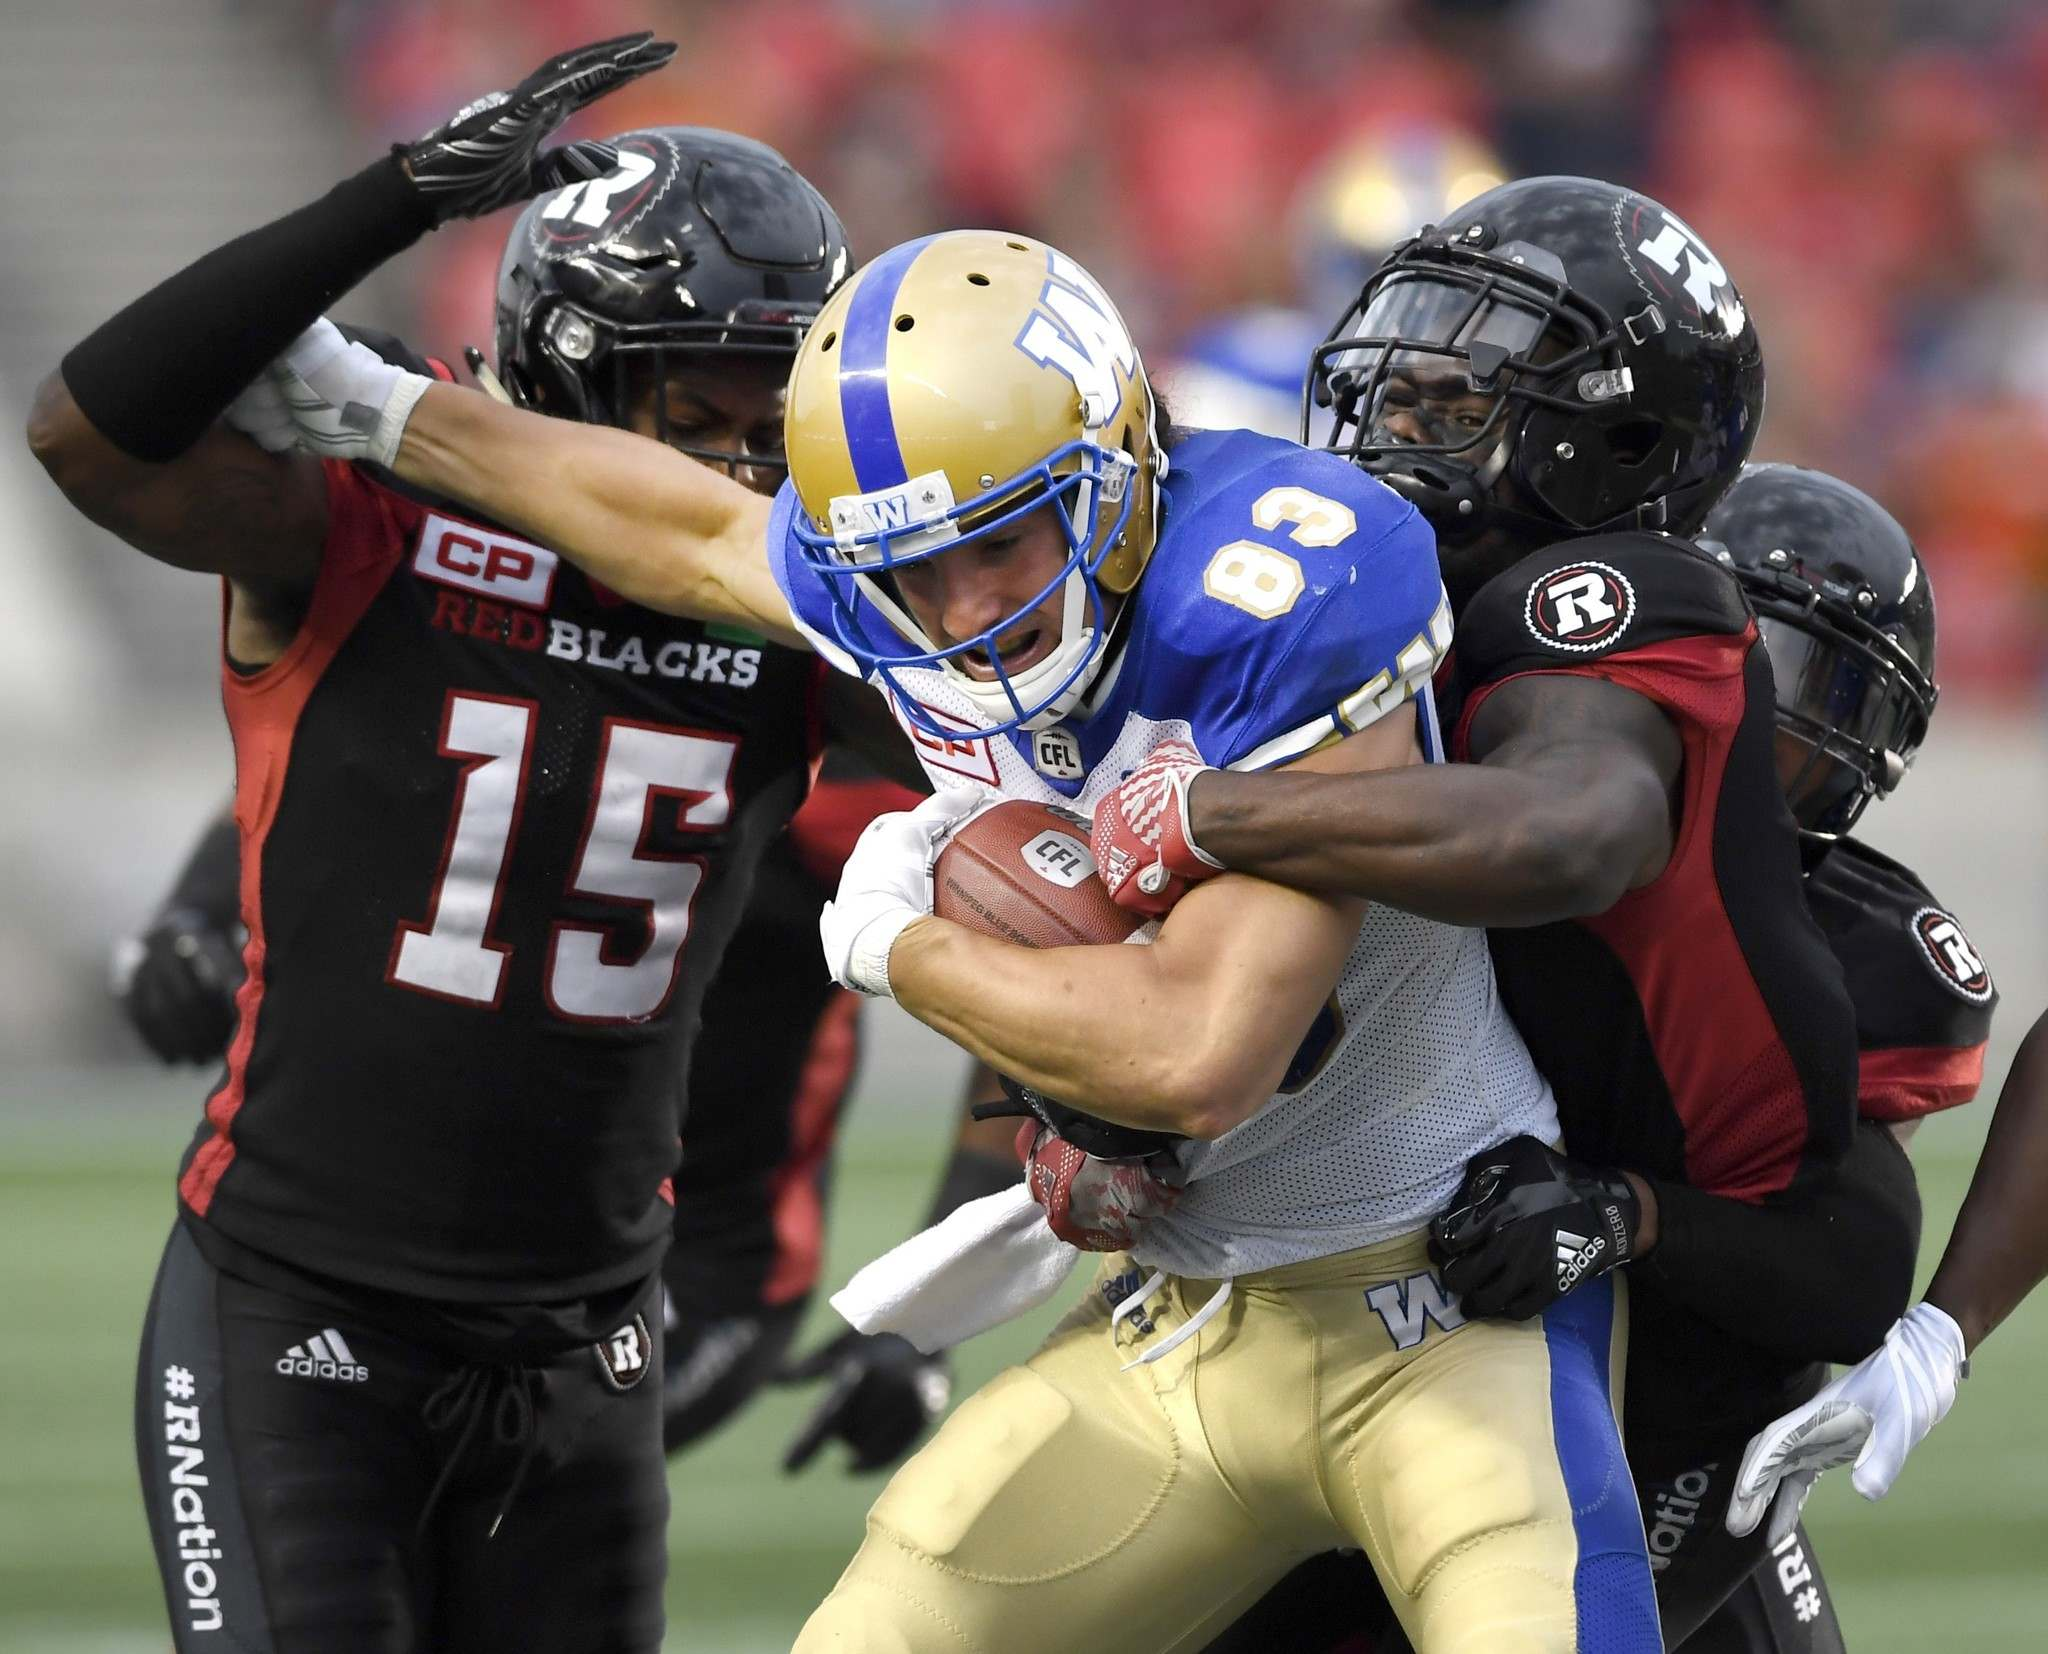 Bombers receiver Julian Feoli-Gudino fights to get past Redblacks defenders Keelan Johnson (left) and Jerrell Gavins Friday in Ottawa.